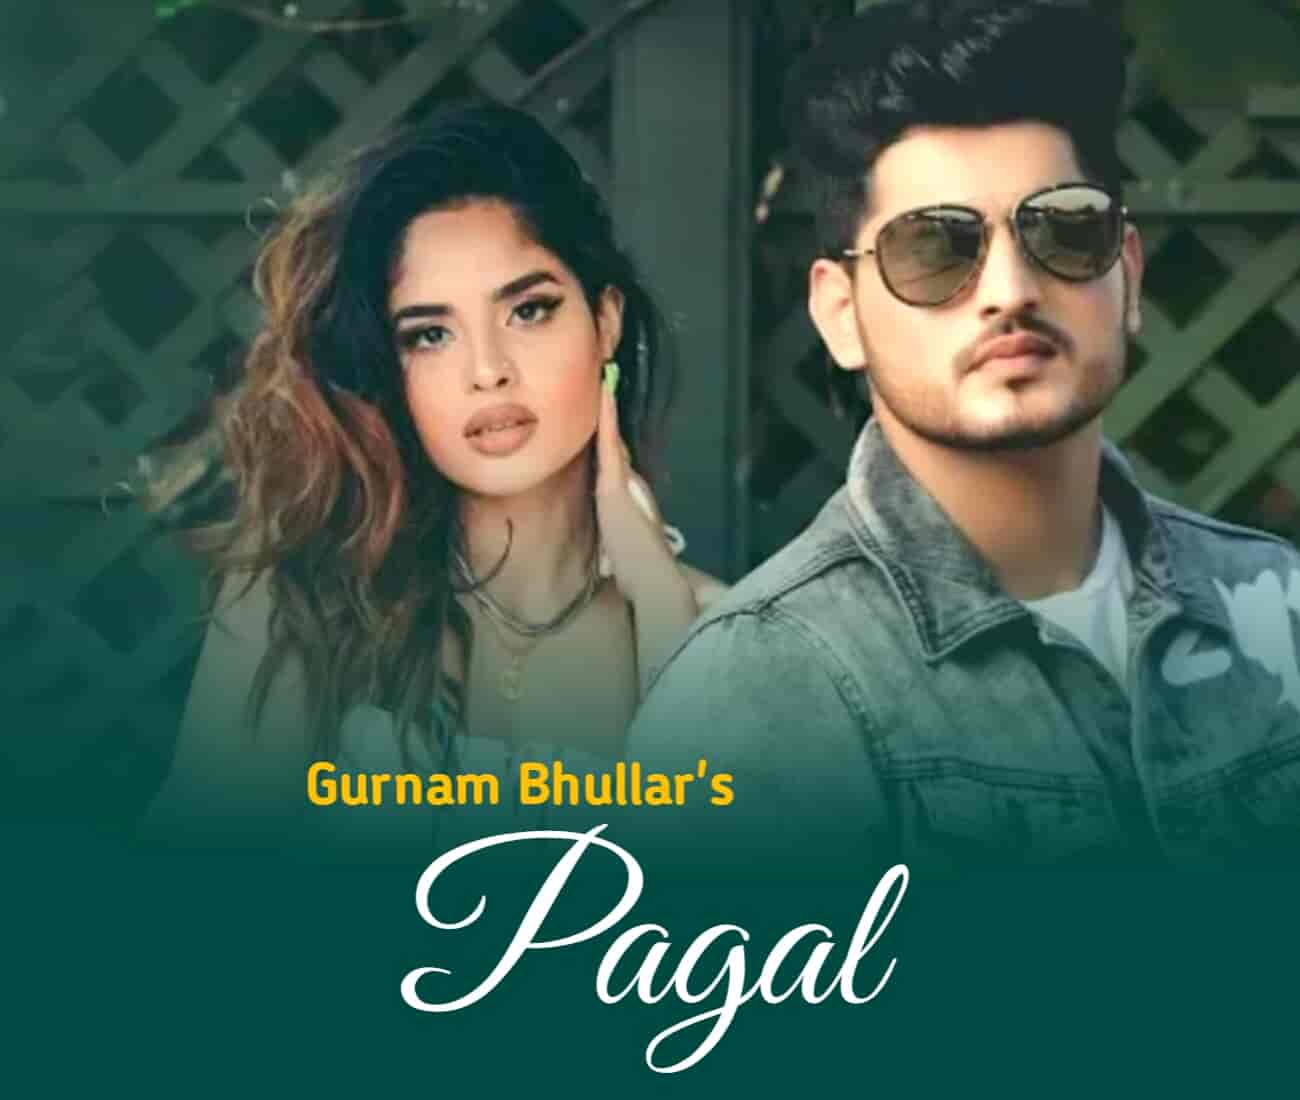 Pagal Punjabi song sung by Gurnam Bhullar